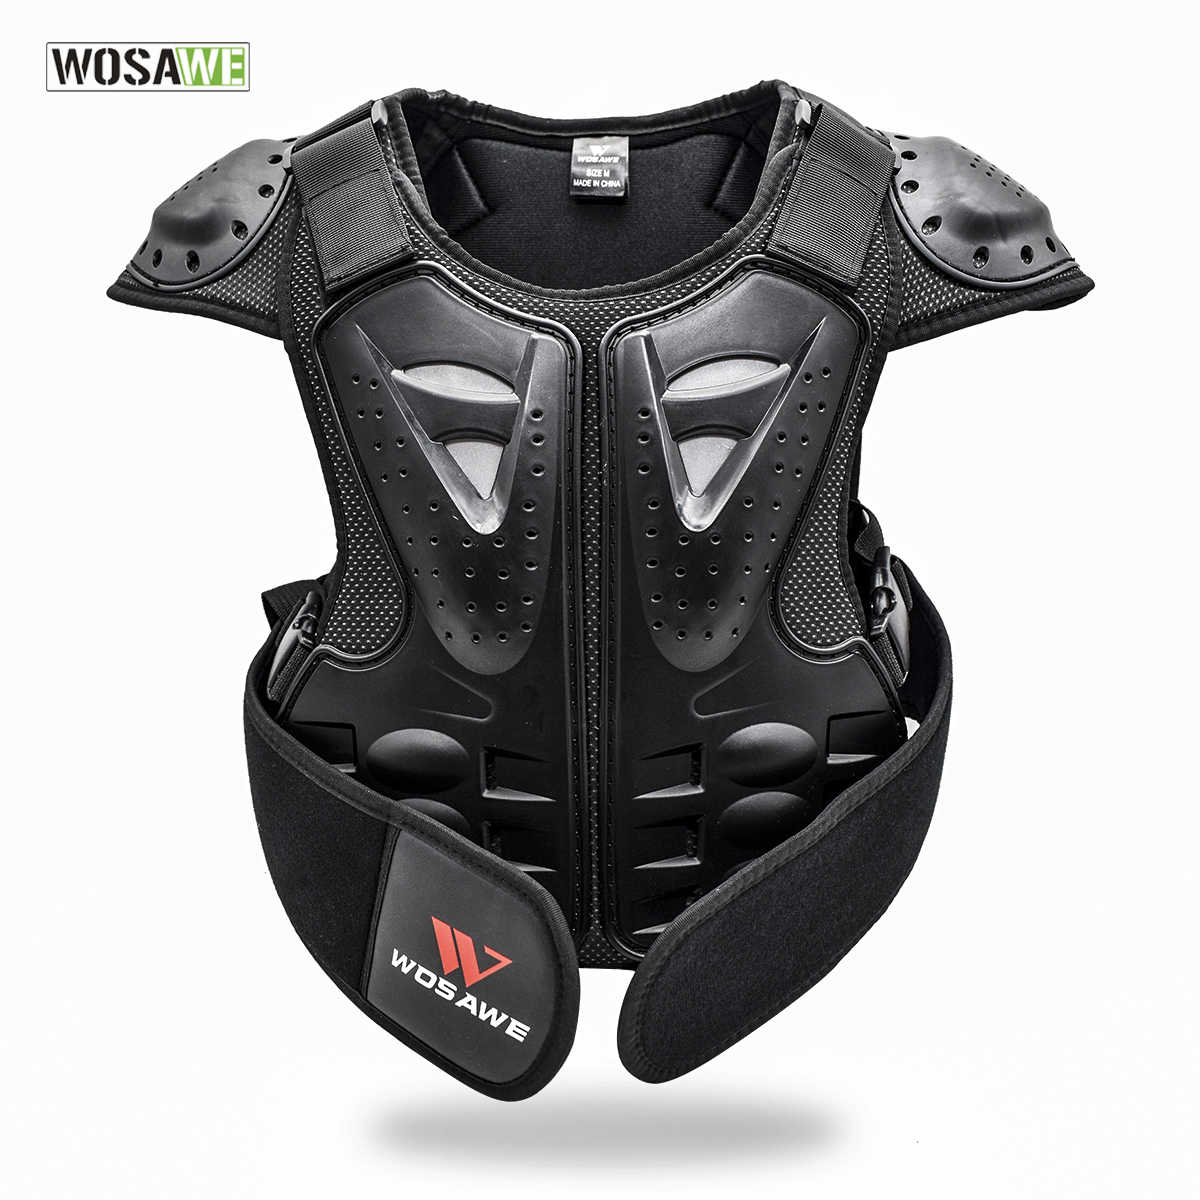 Black - 12 Year Child Motorbike Off-Road Protective Gear Motorcycle Kids Motocross Breathable Safety Body Armour